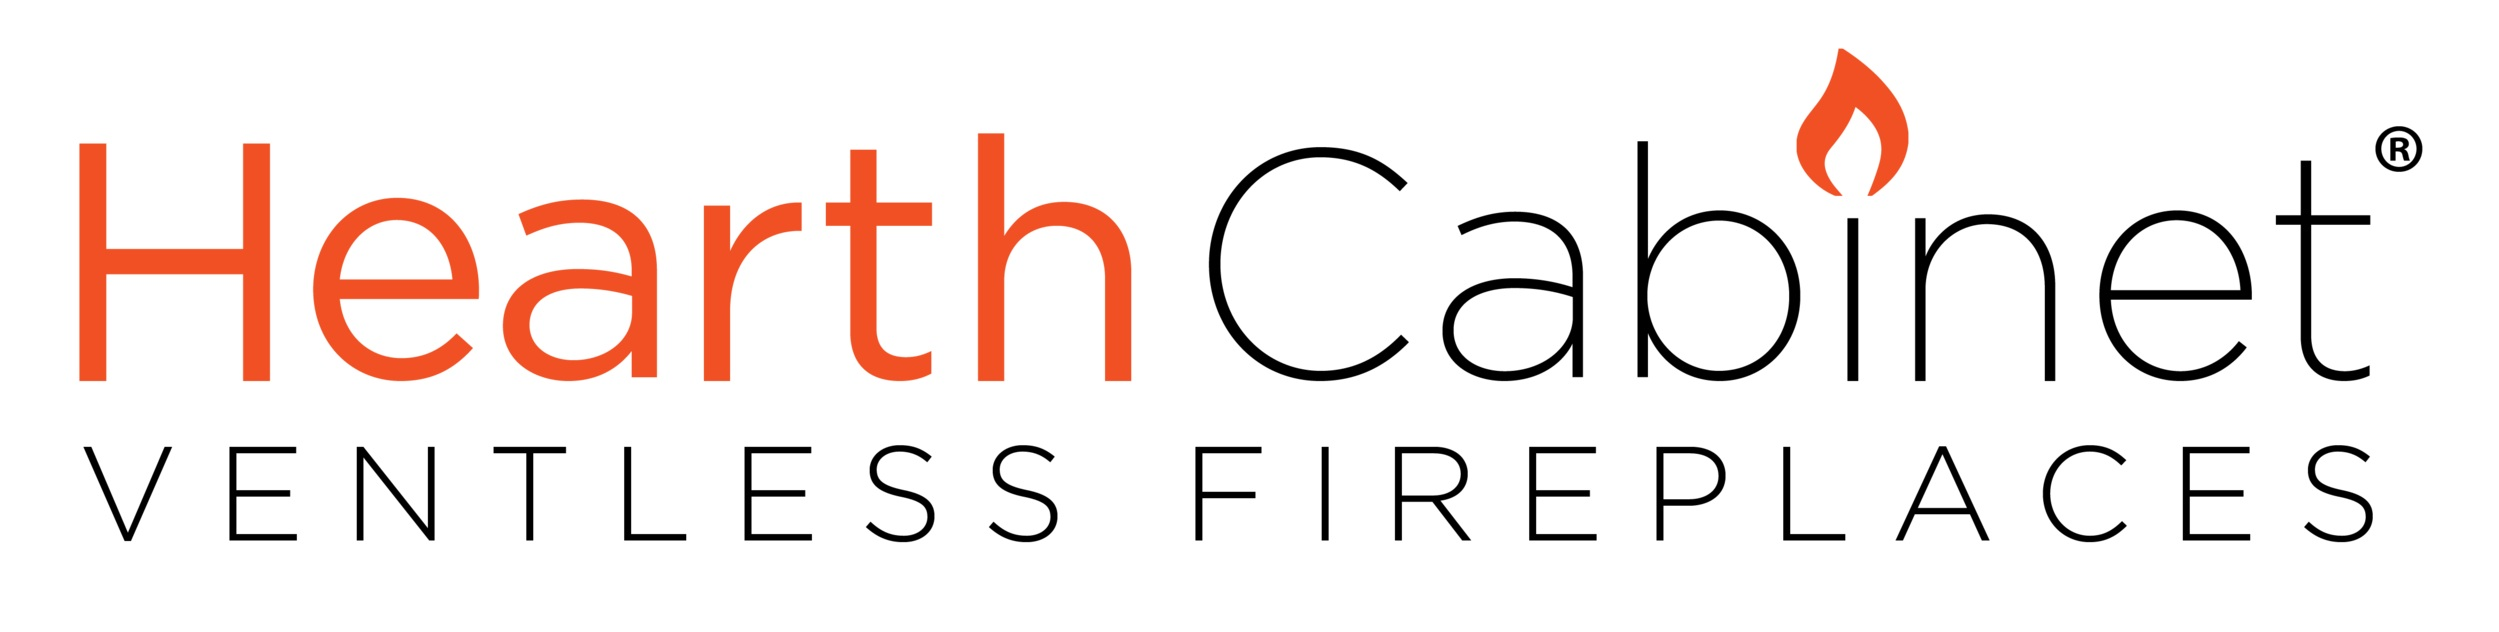 HearthCabinet® Ventless Fireplaces